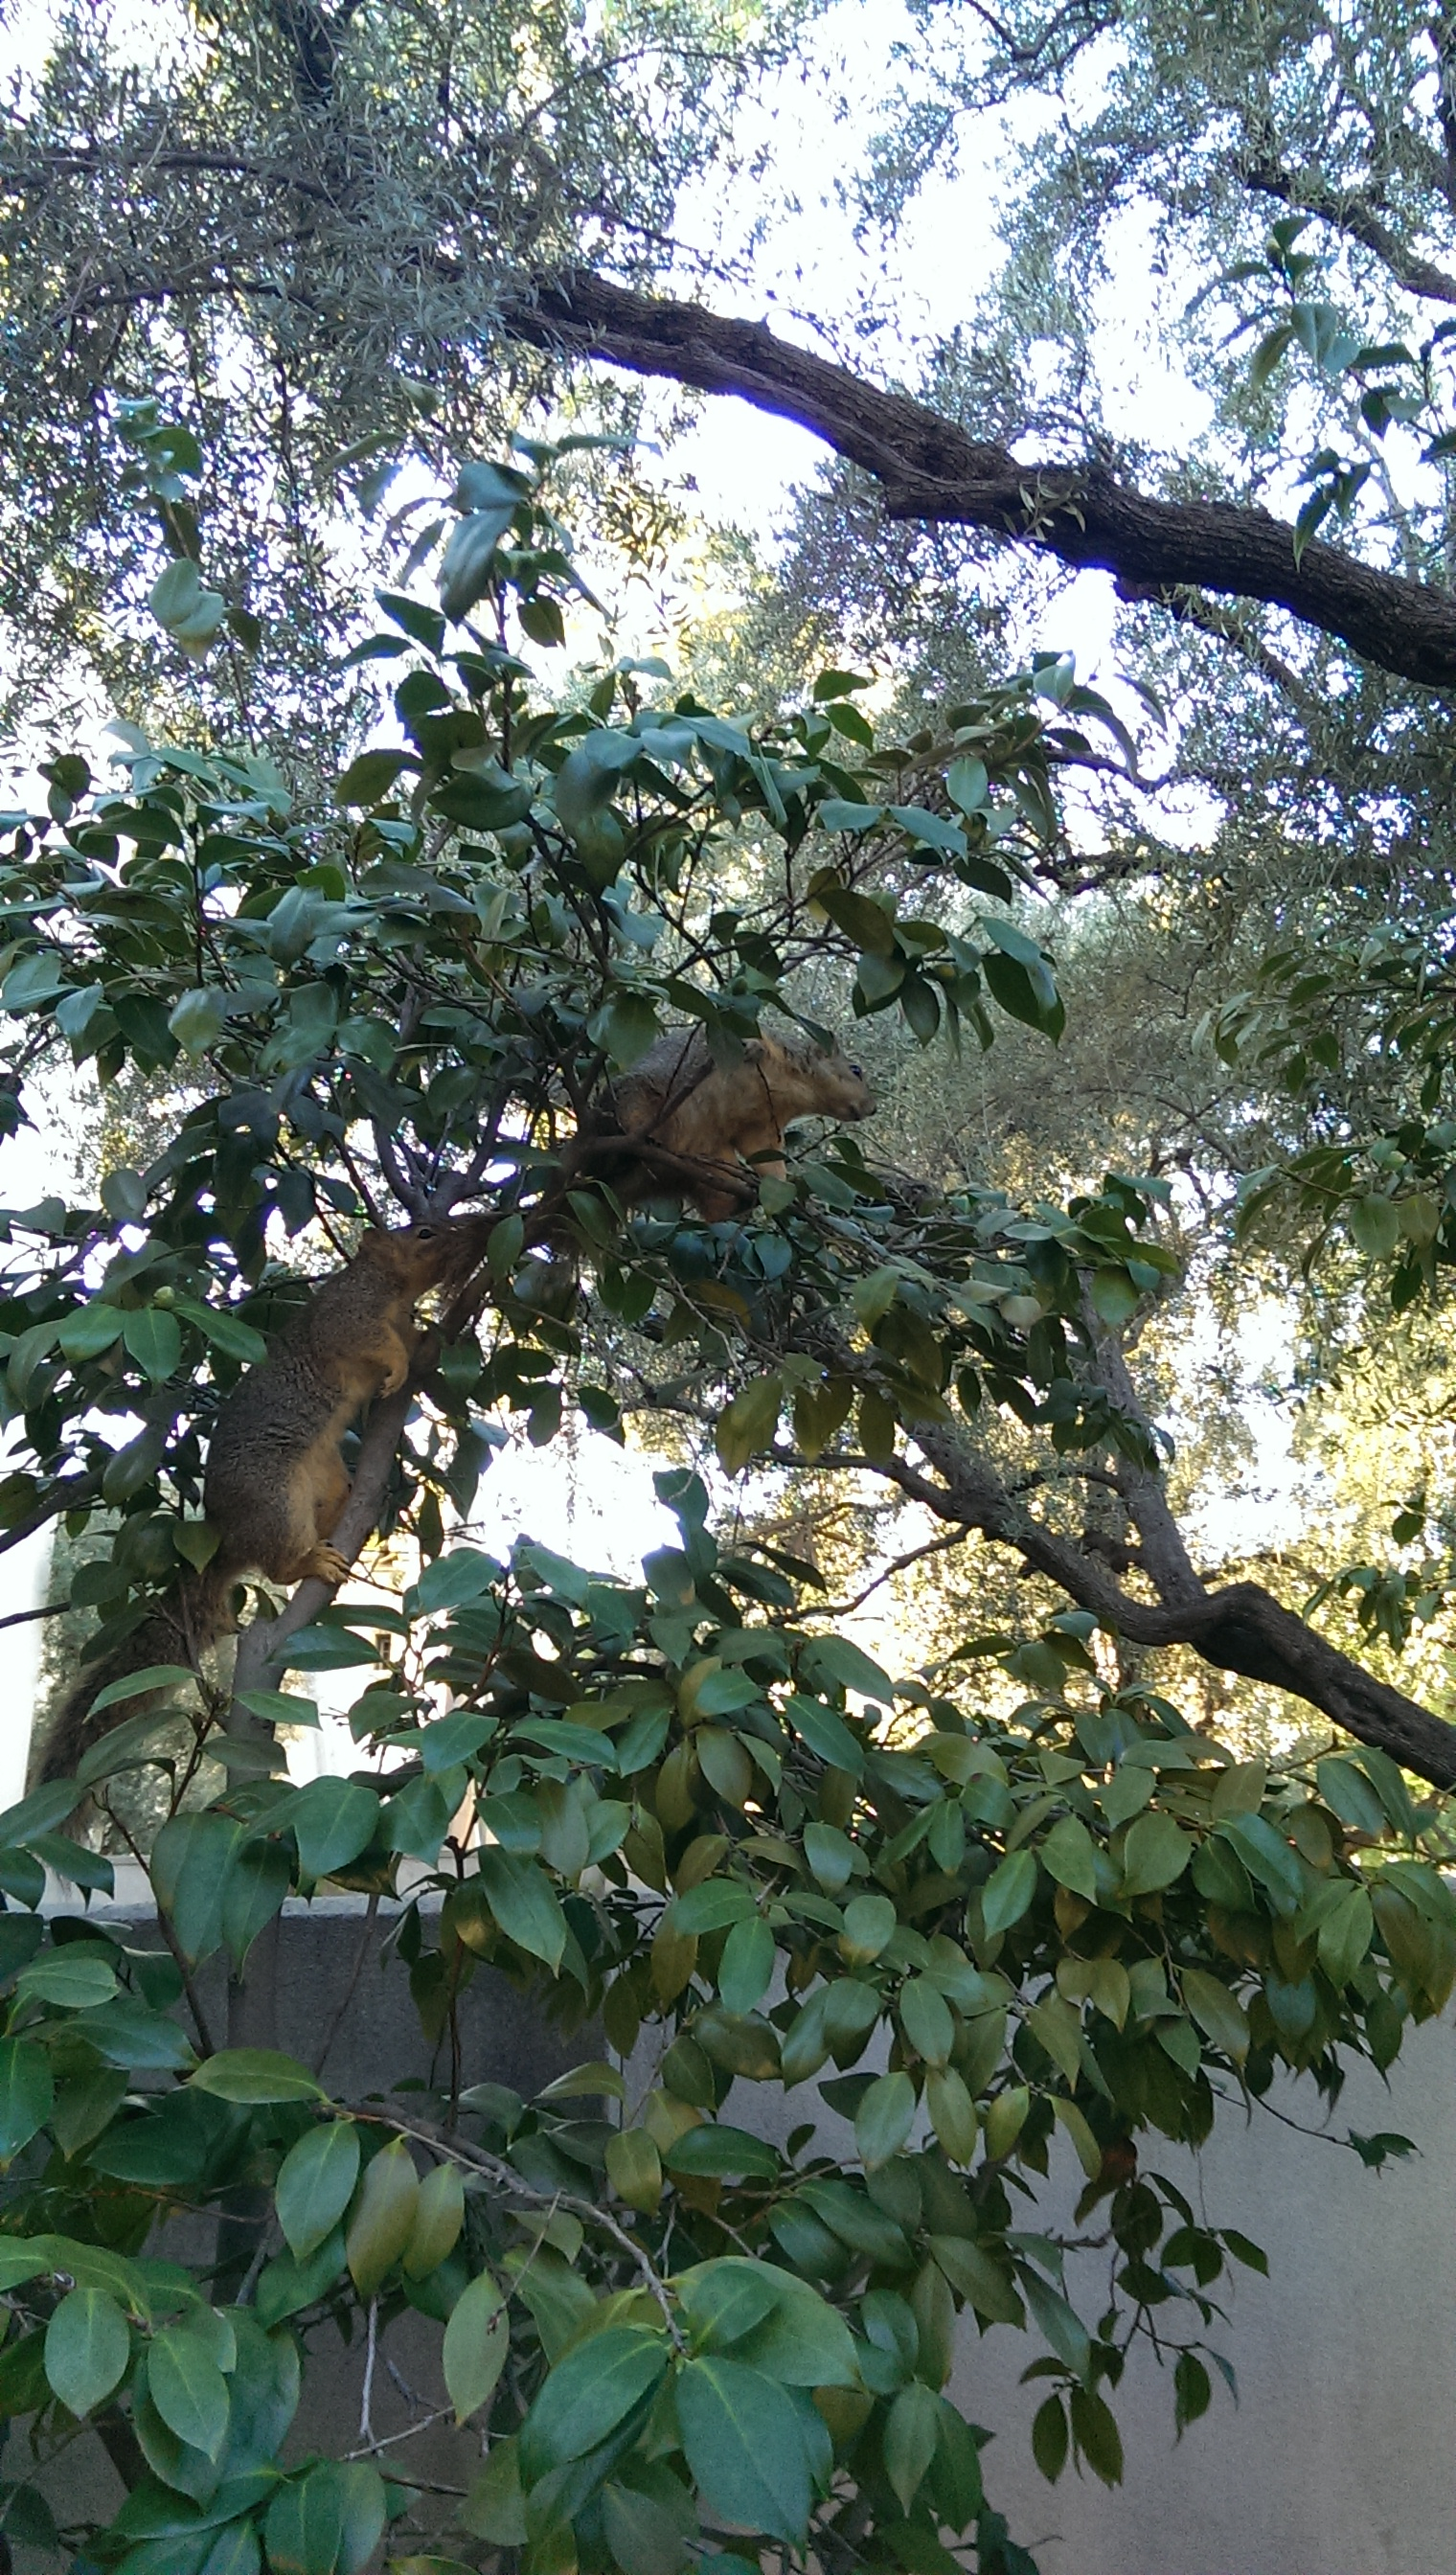 squirrels of caltech a not so artsy photojournal caltech